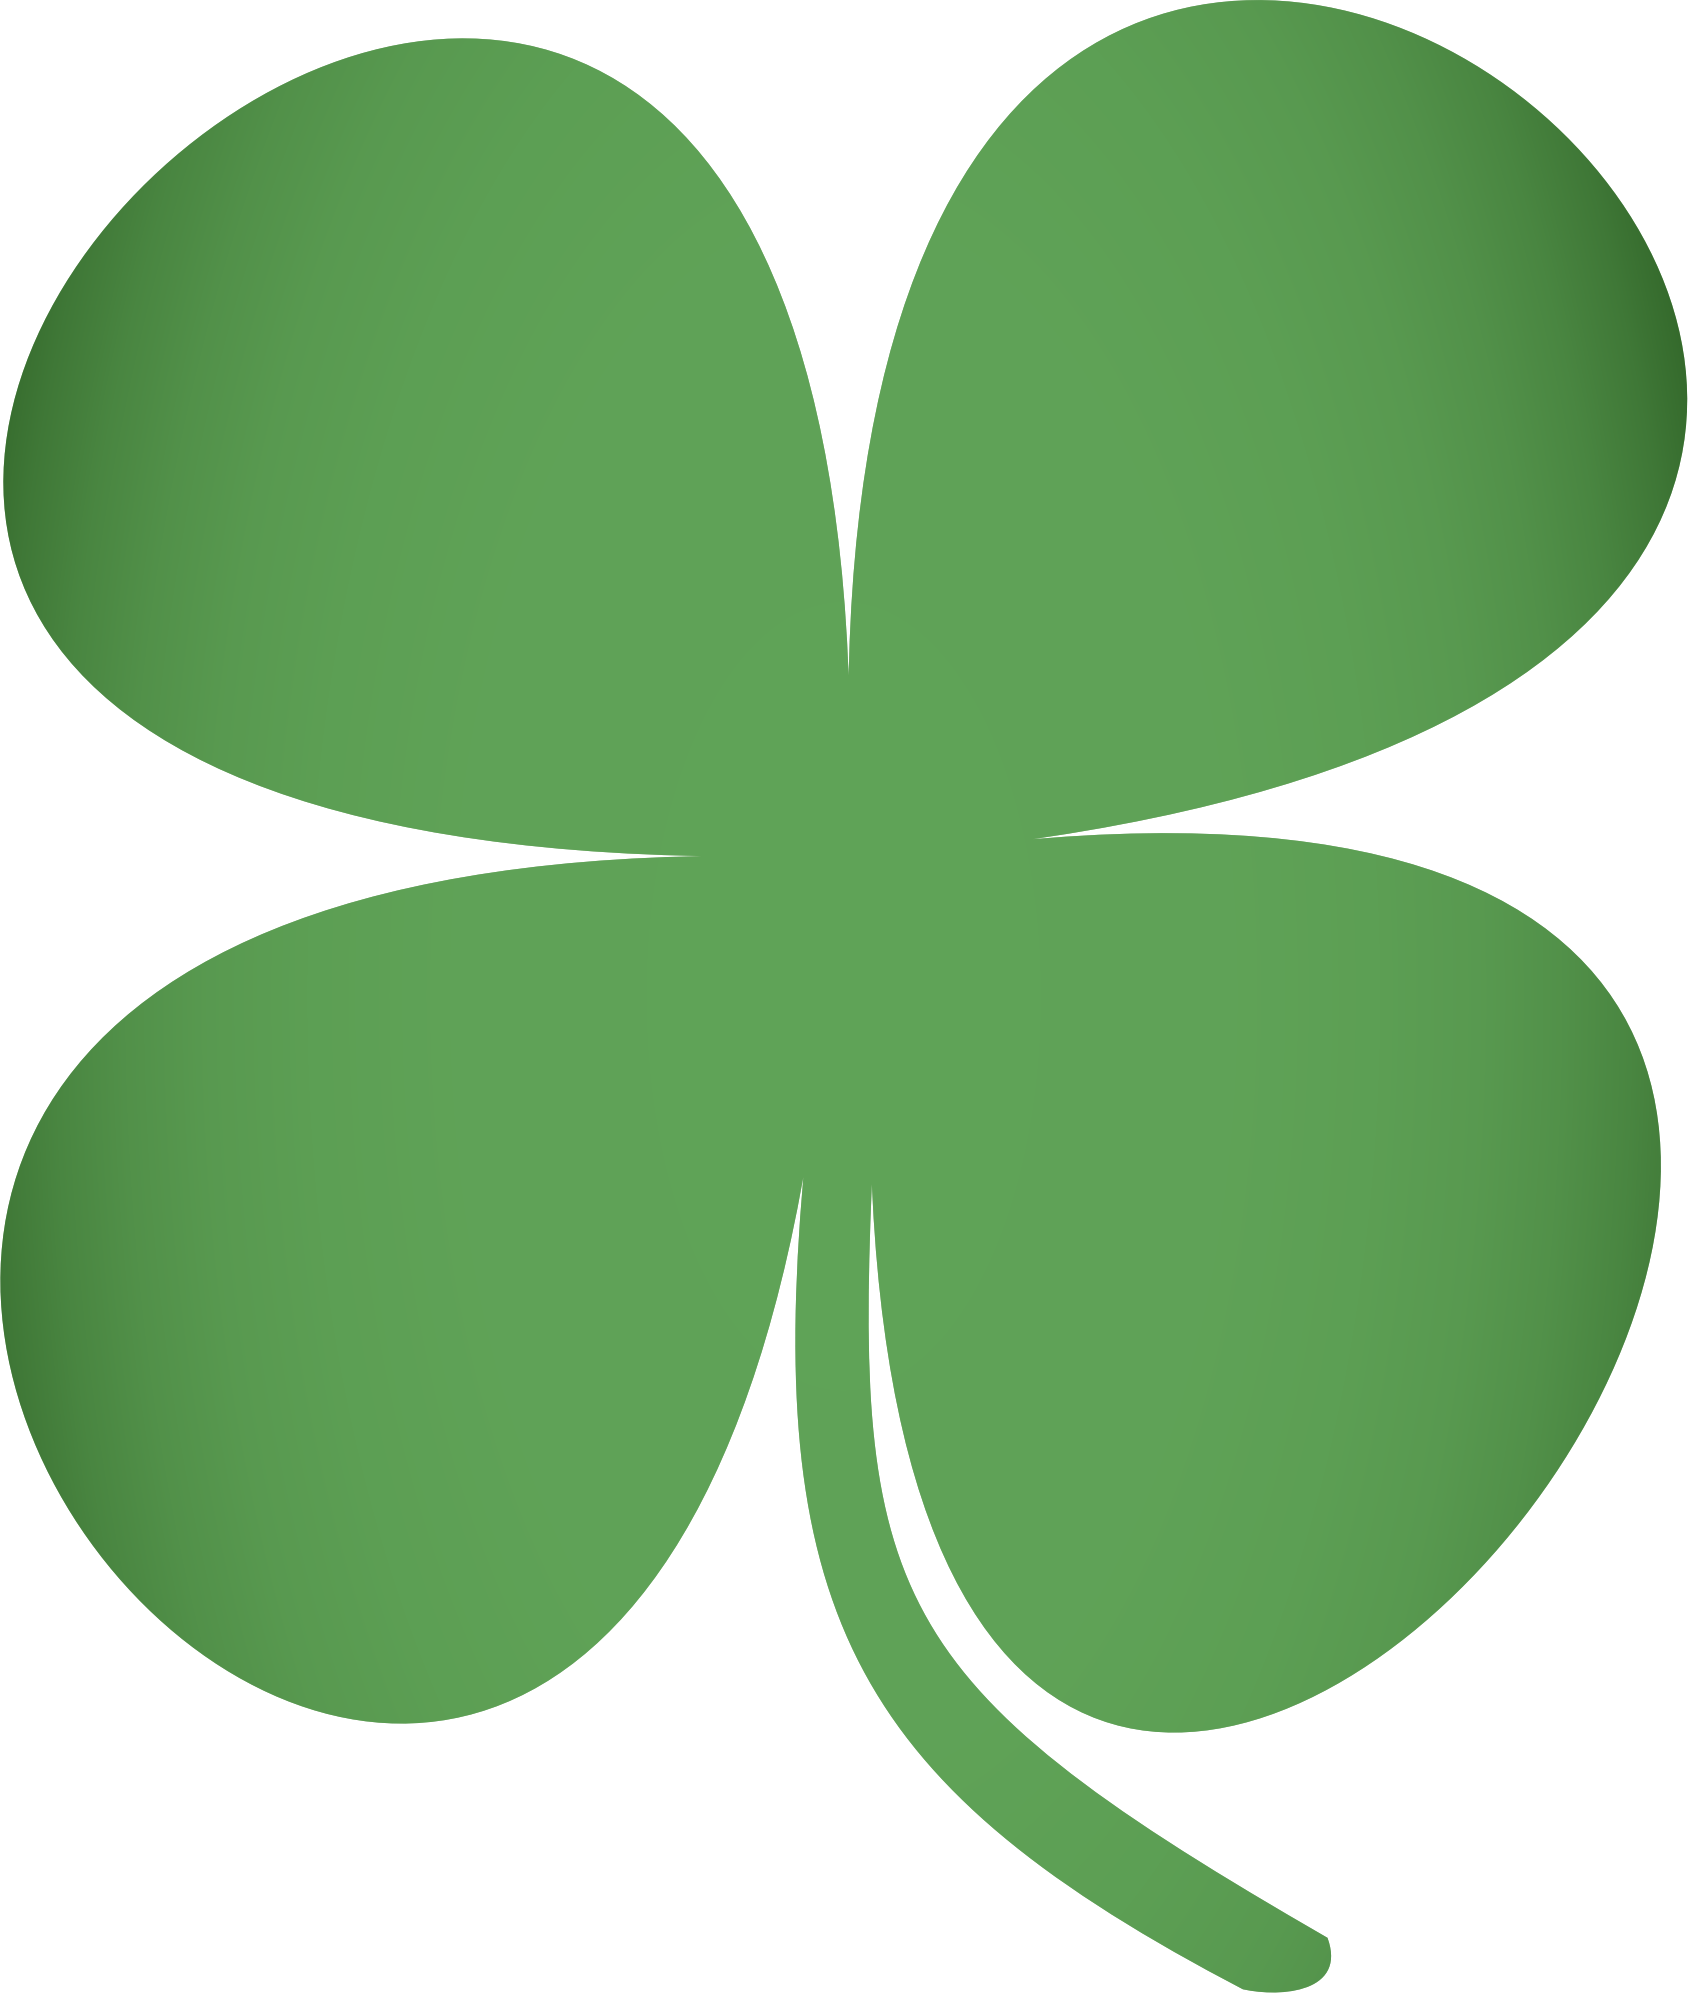 Shamrock images group png. Money clipart translucent